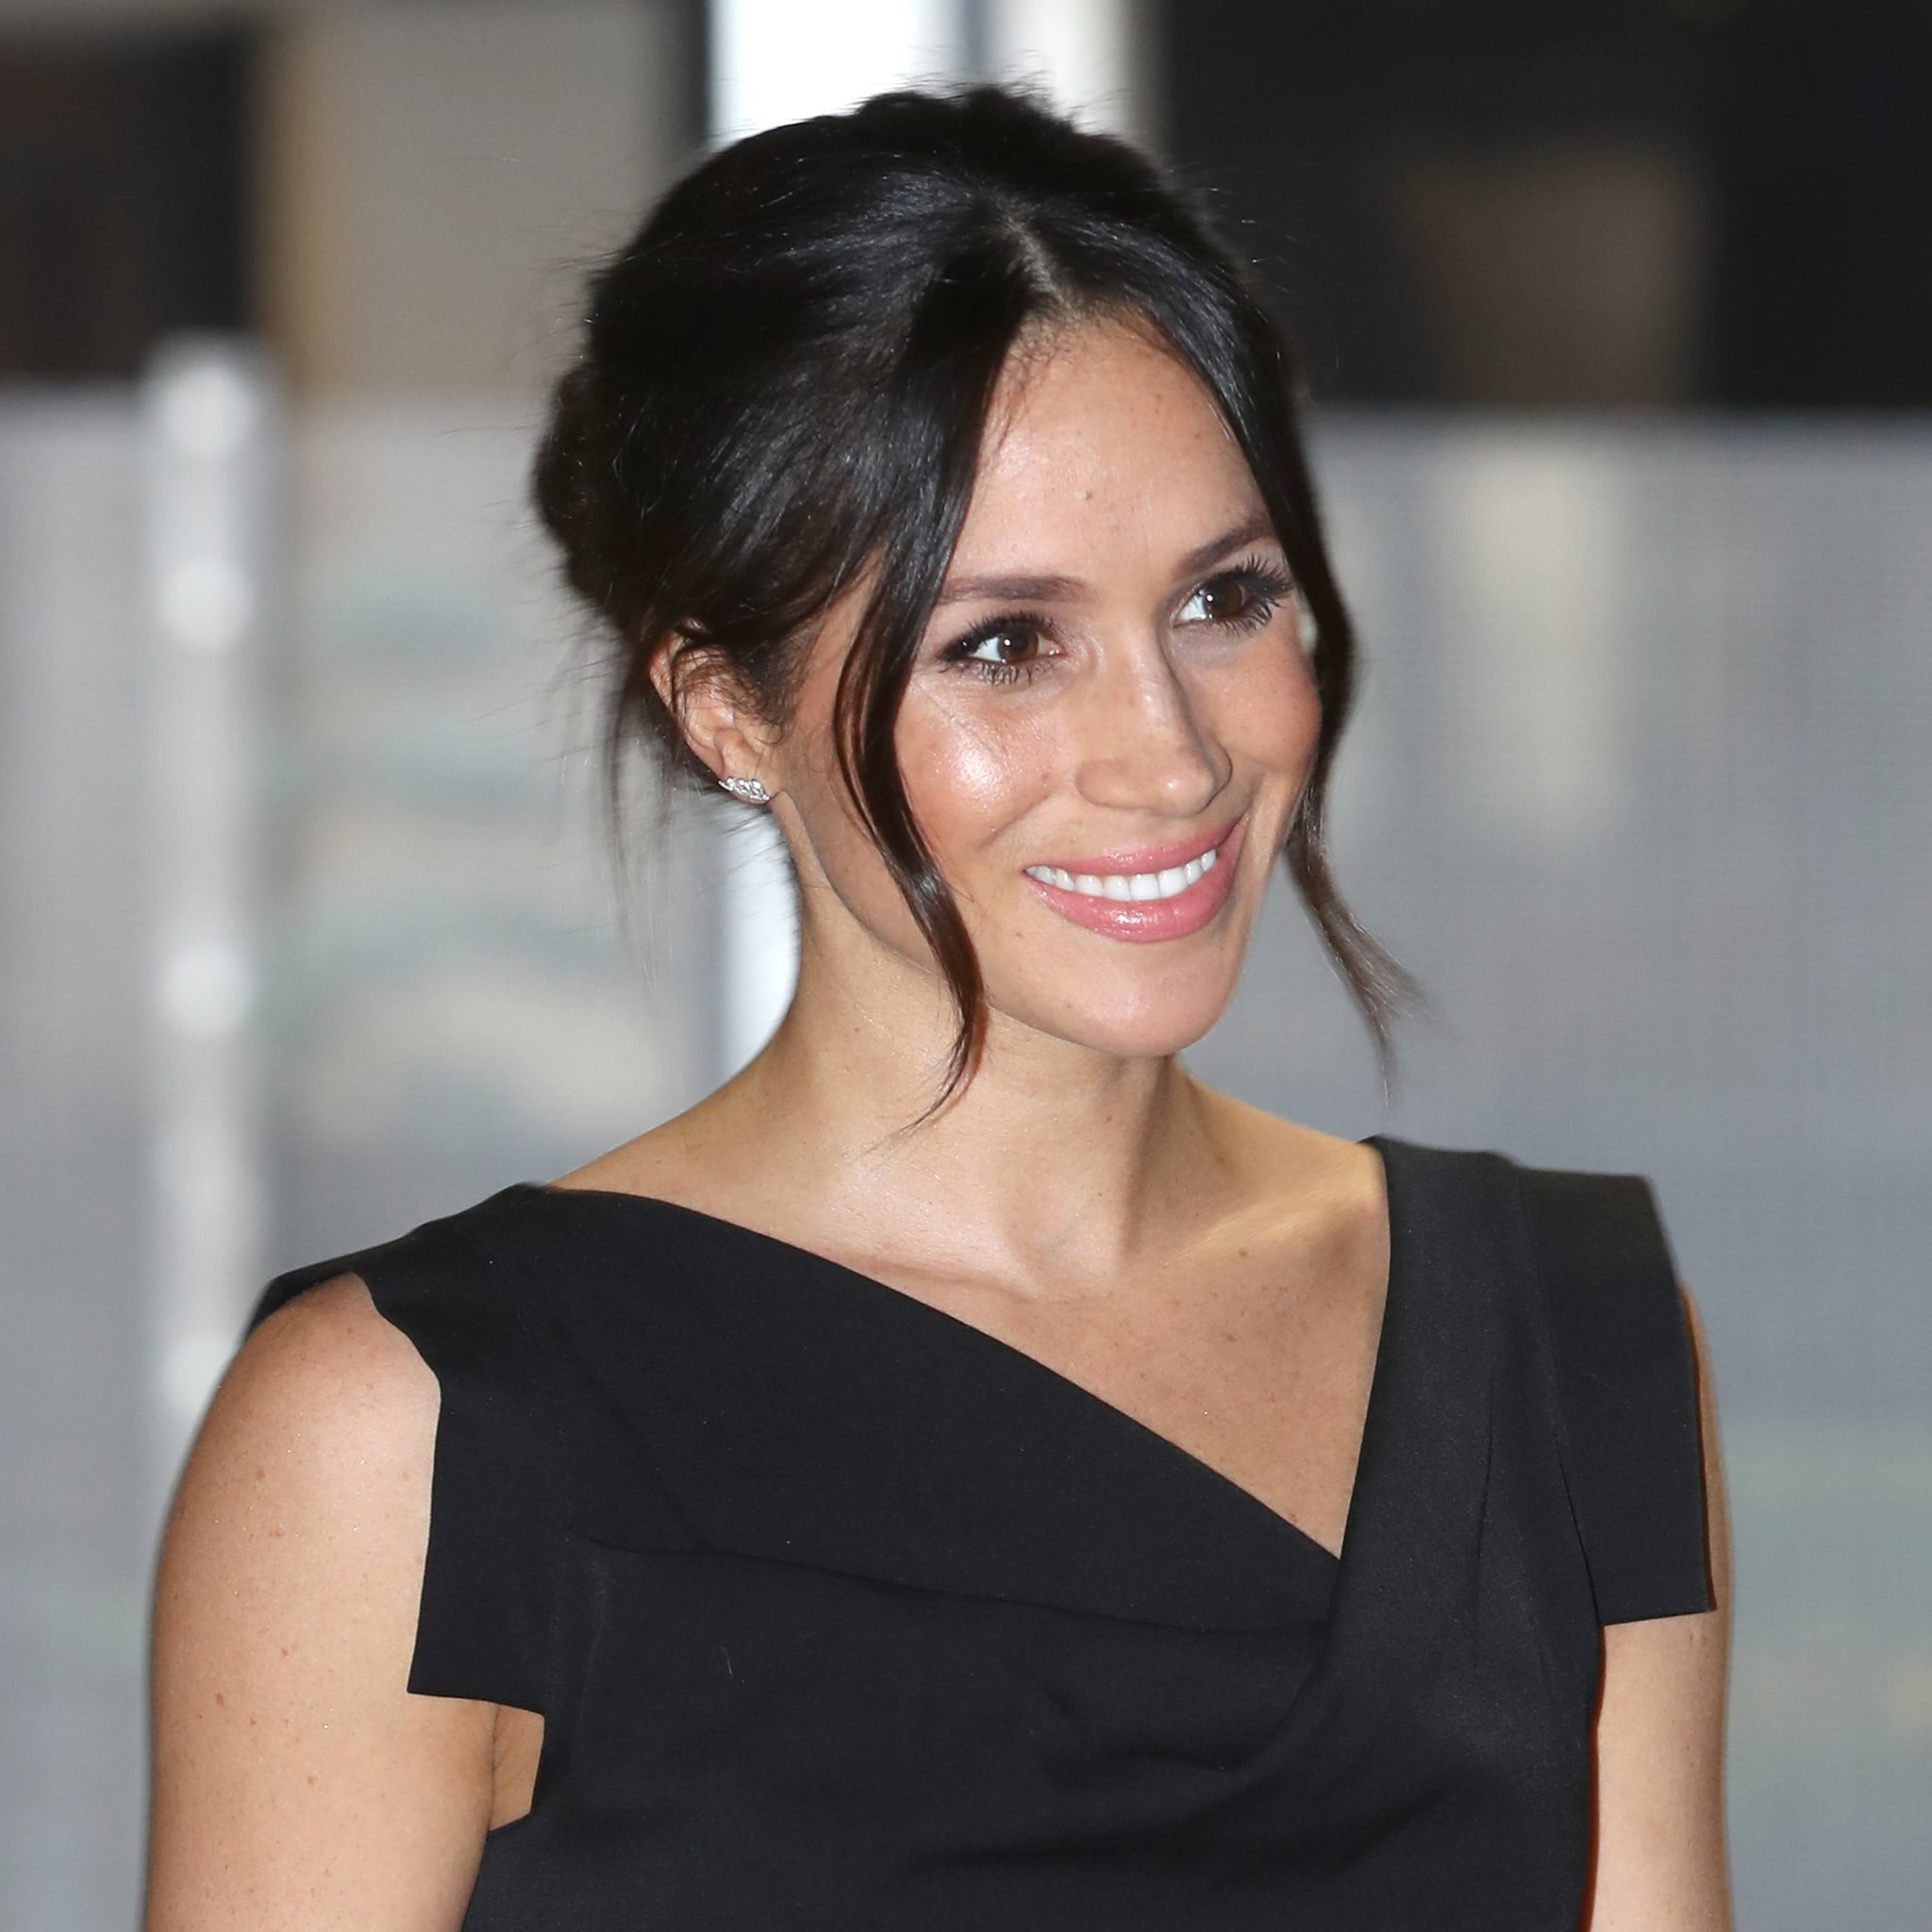 Meghan Markle Beauty Routine Editor Experiment  POPSUGAR Beauty